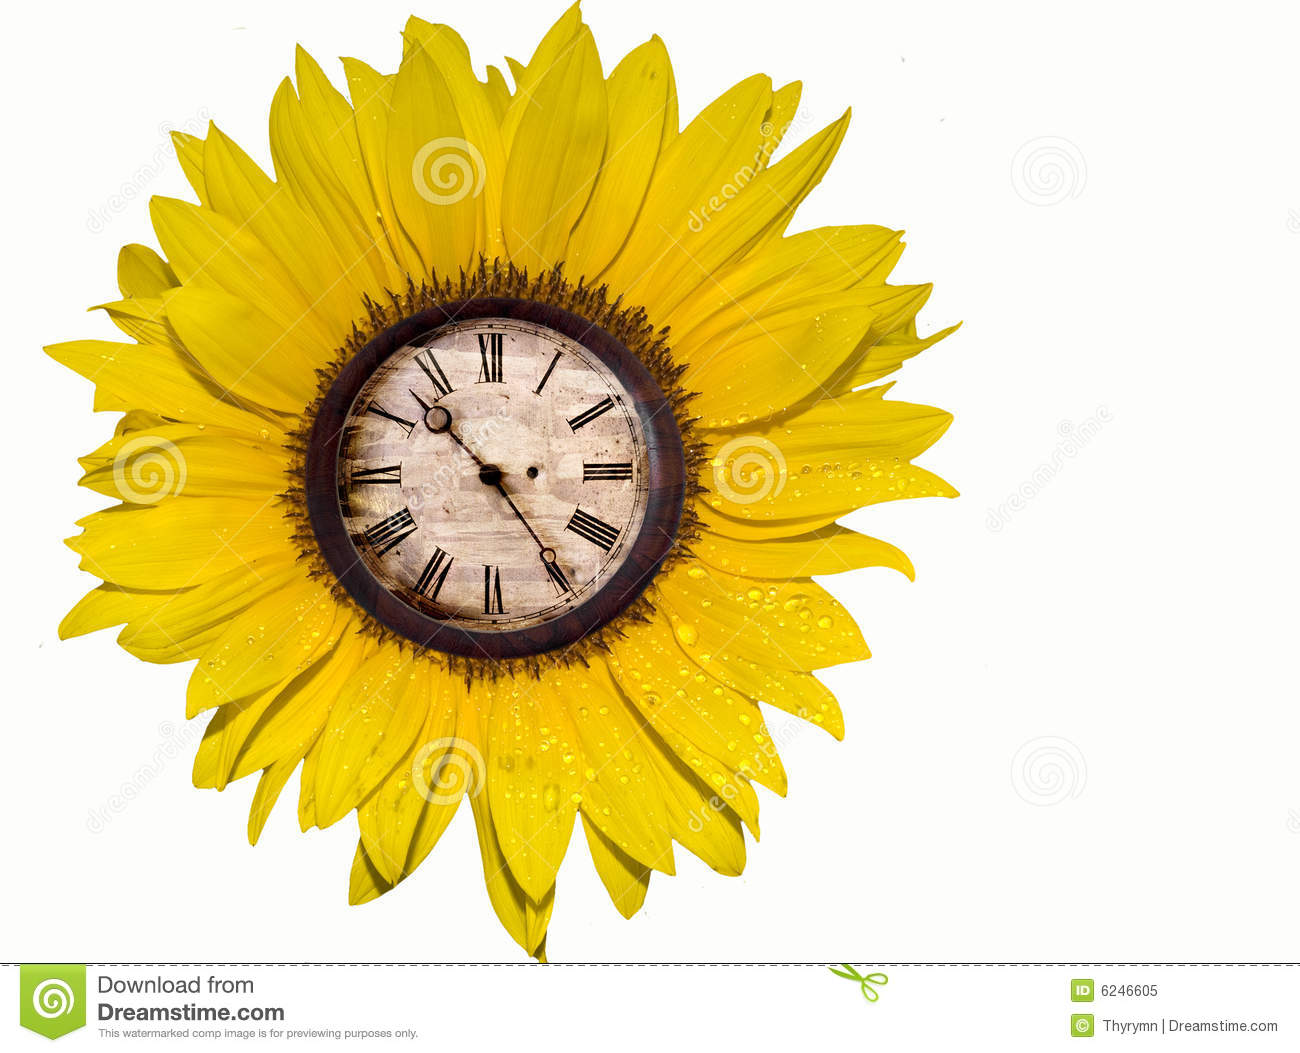 Sunflower with clock